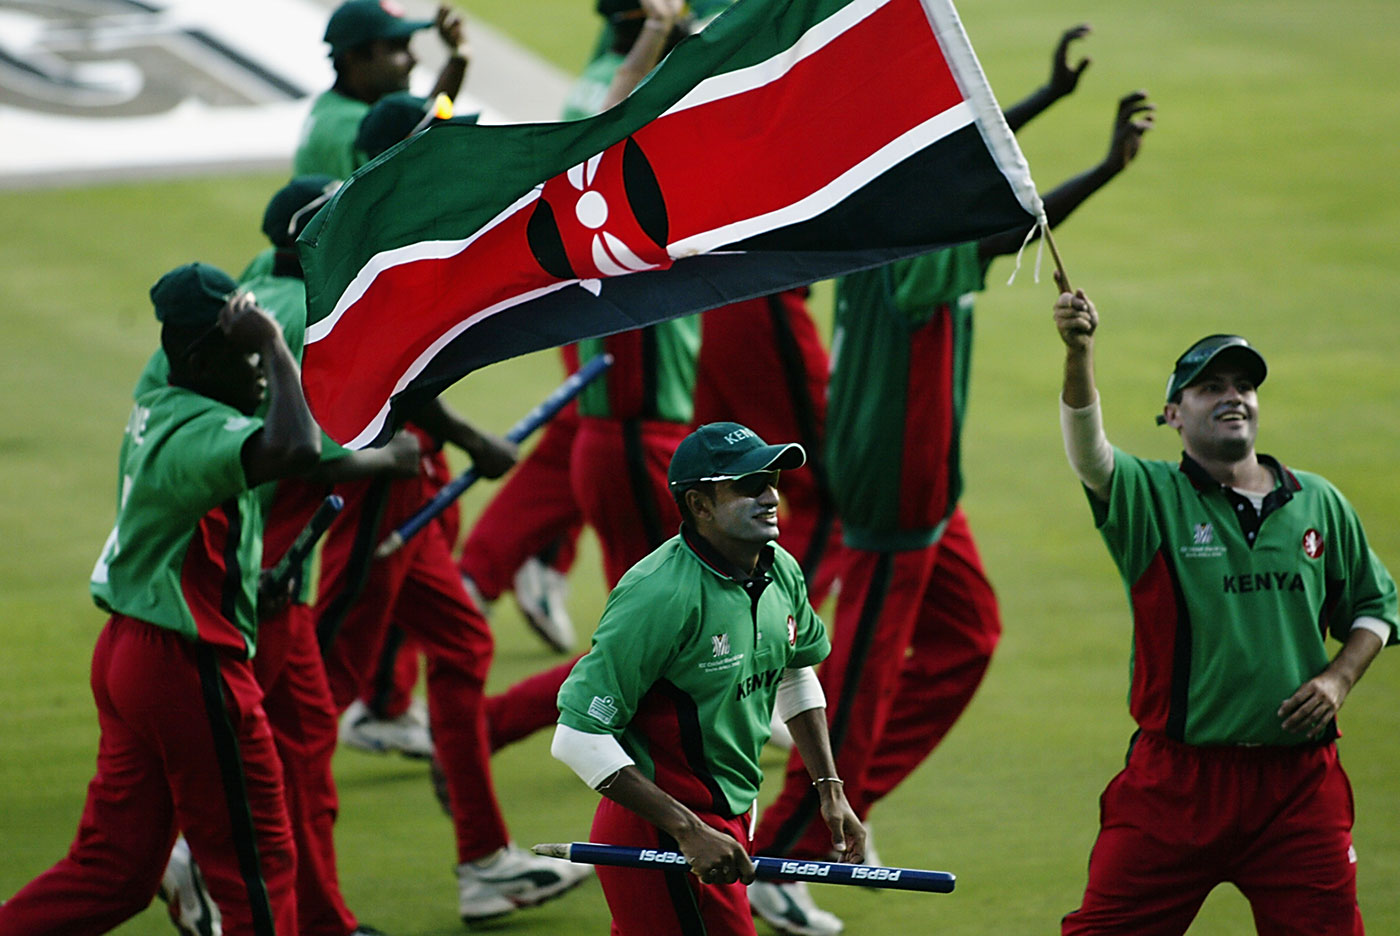 Kenya were hit by clashes between the board and the players before the World Cup, but Woolmer managed to turn their focus towards training and technique, and they ended up reaching the semi-finals